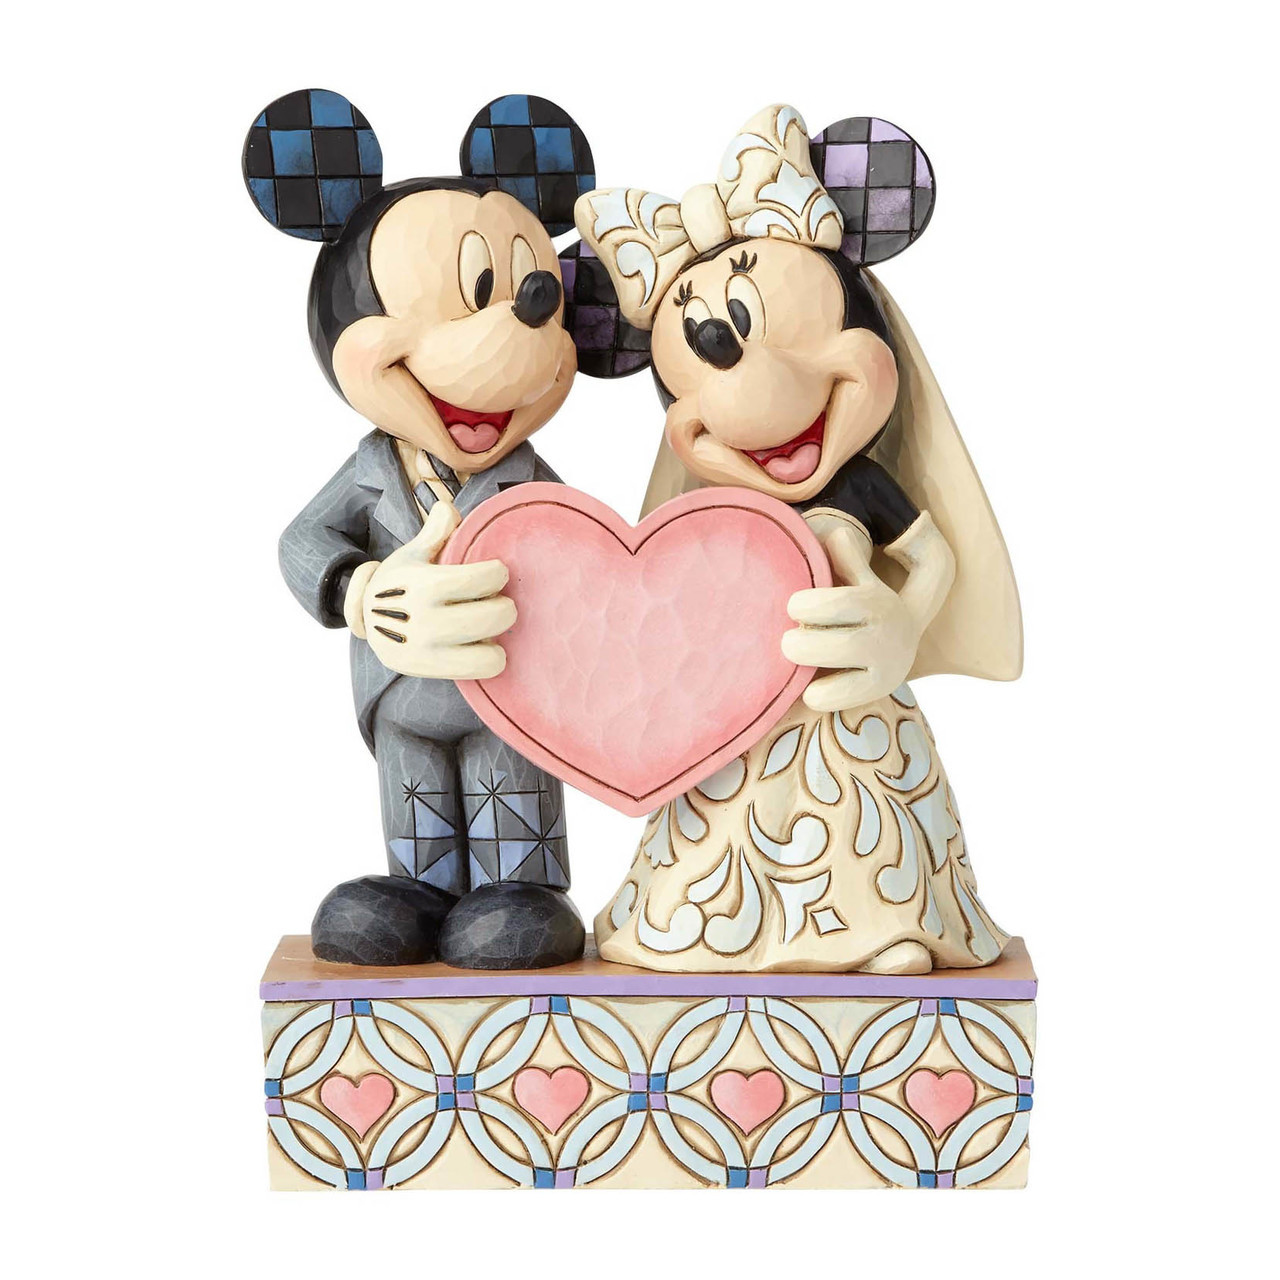 Mickey And Minnie Mouse Wedding Figurine Jim Shore Disney